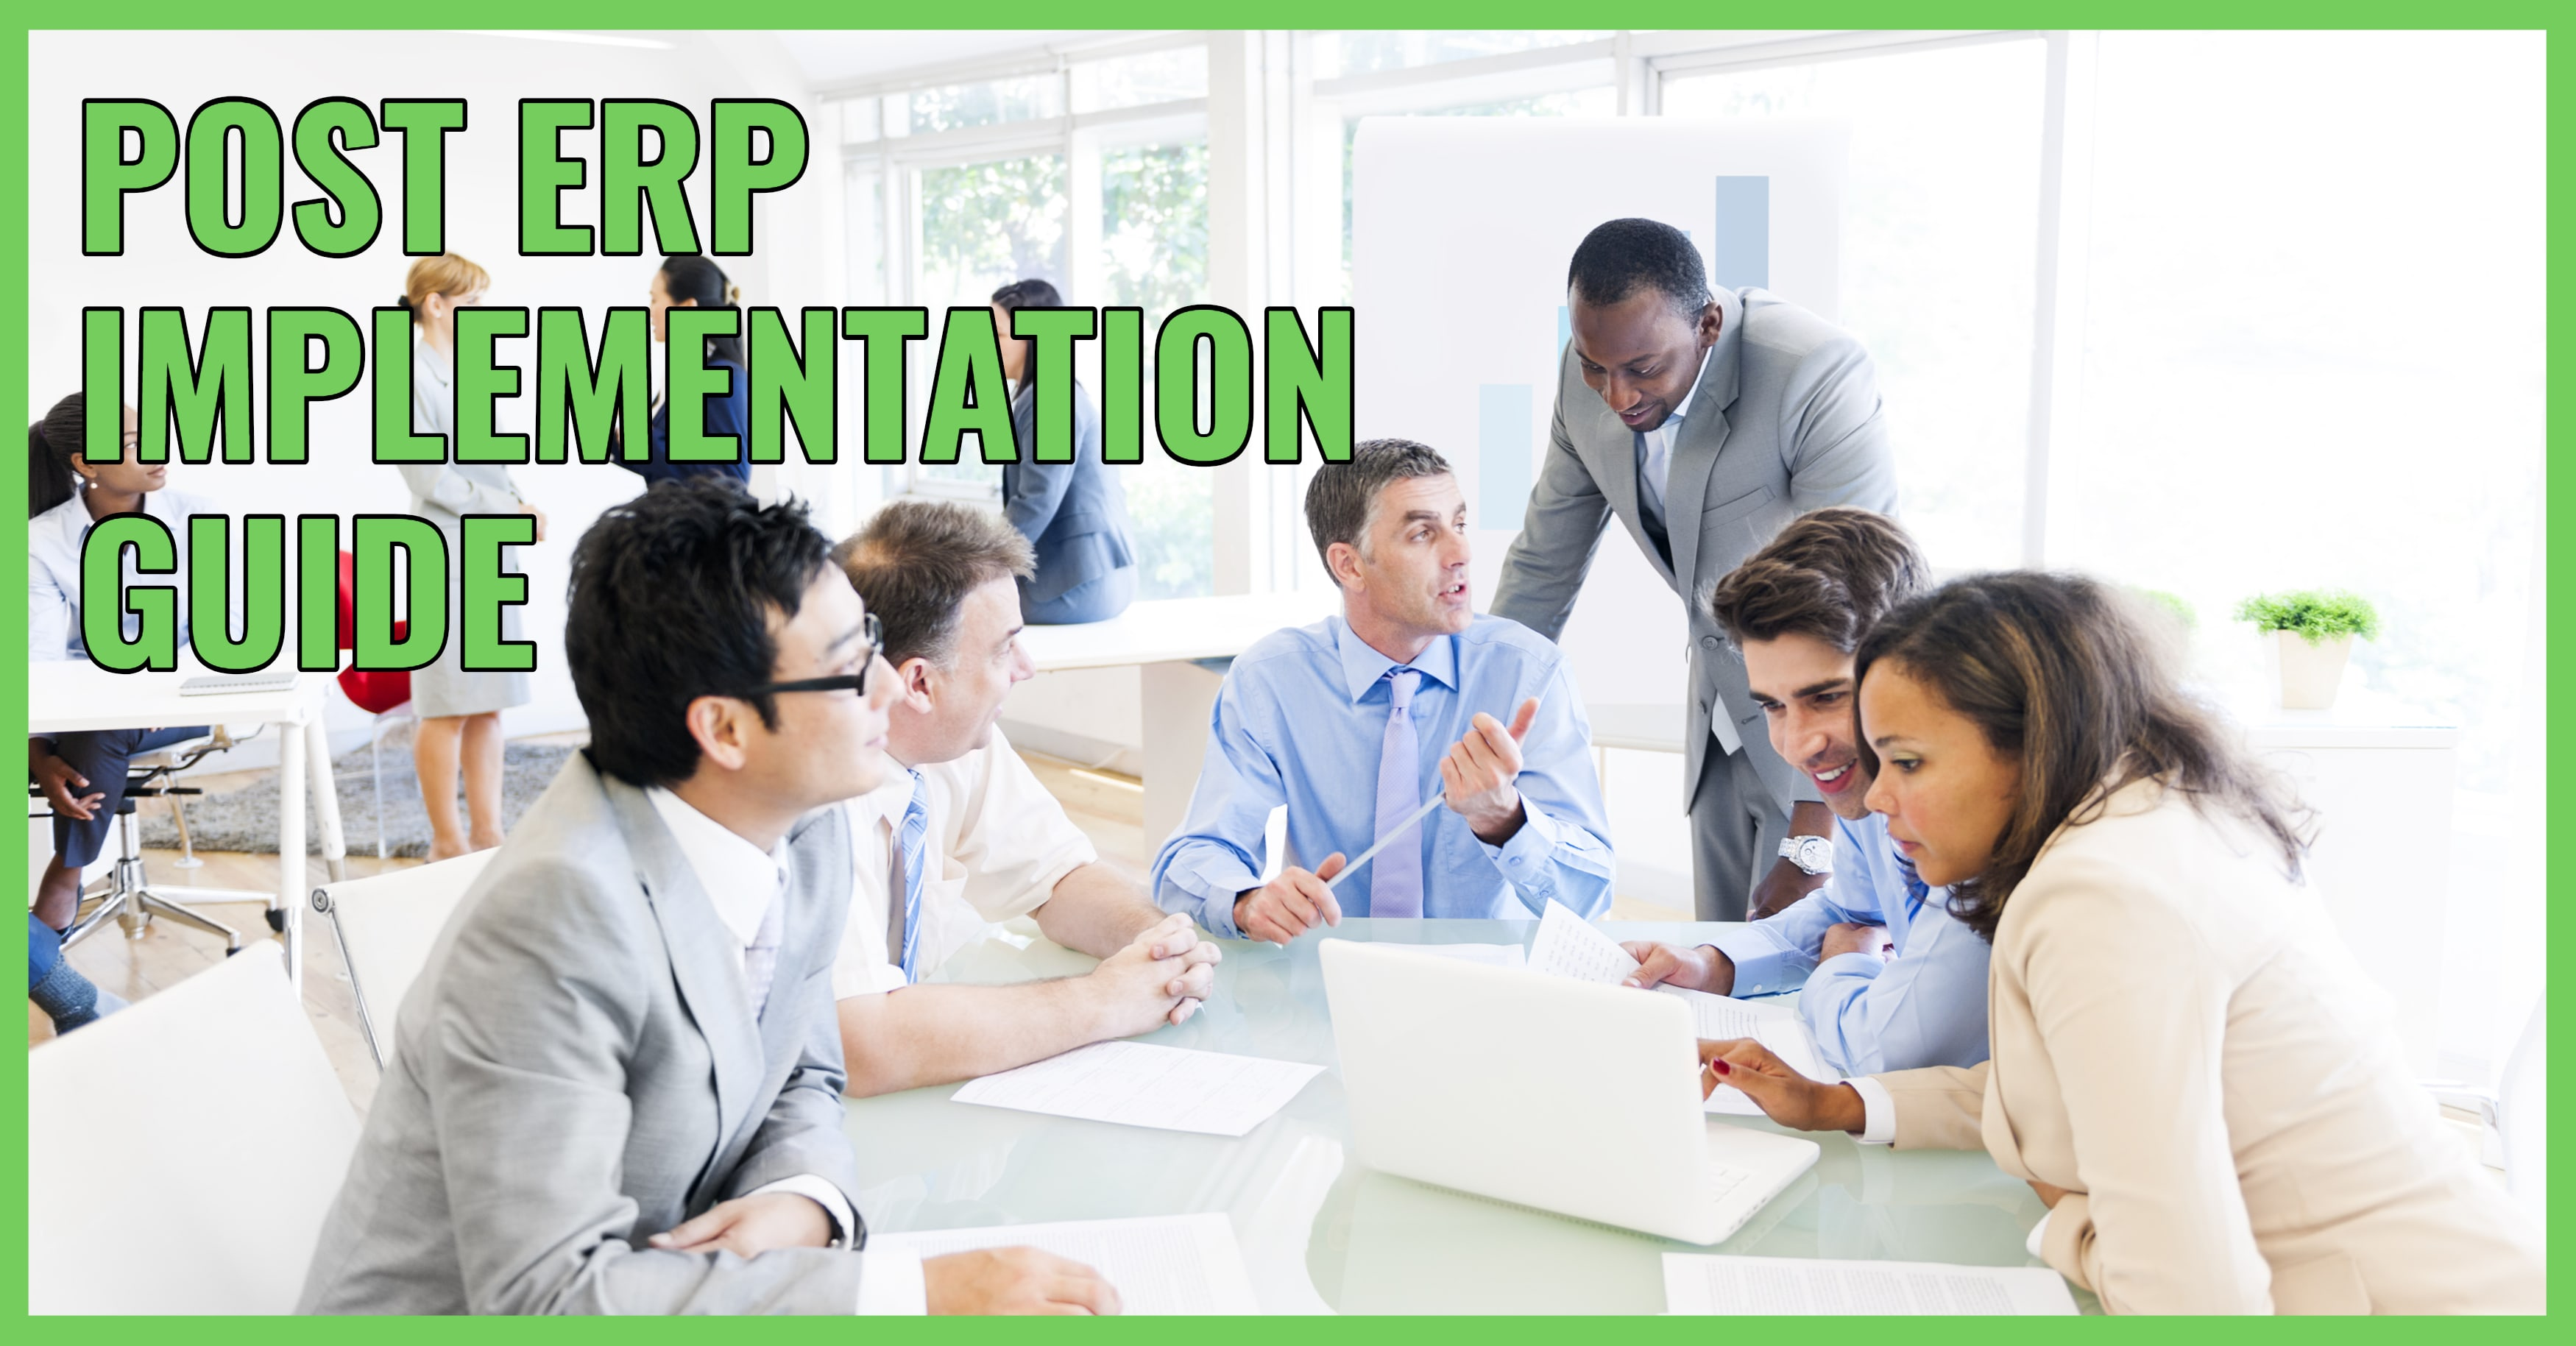 Post ERP Implementation Guide